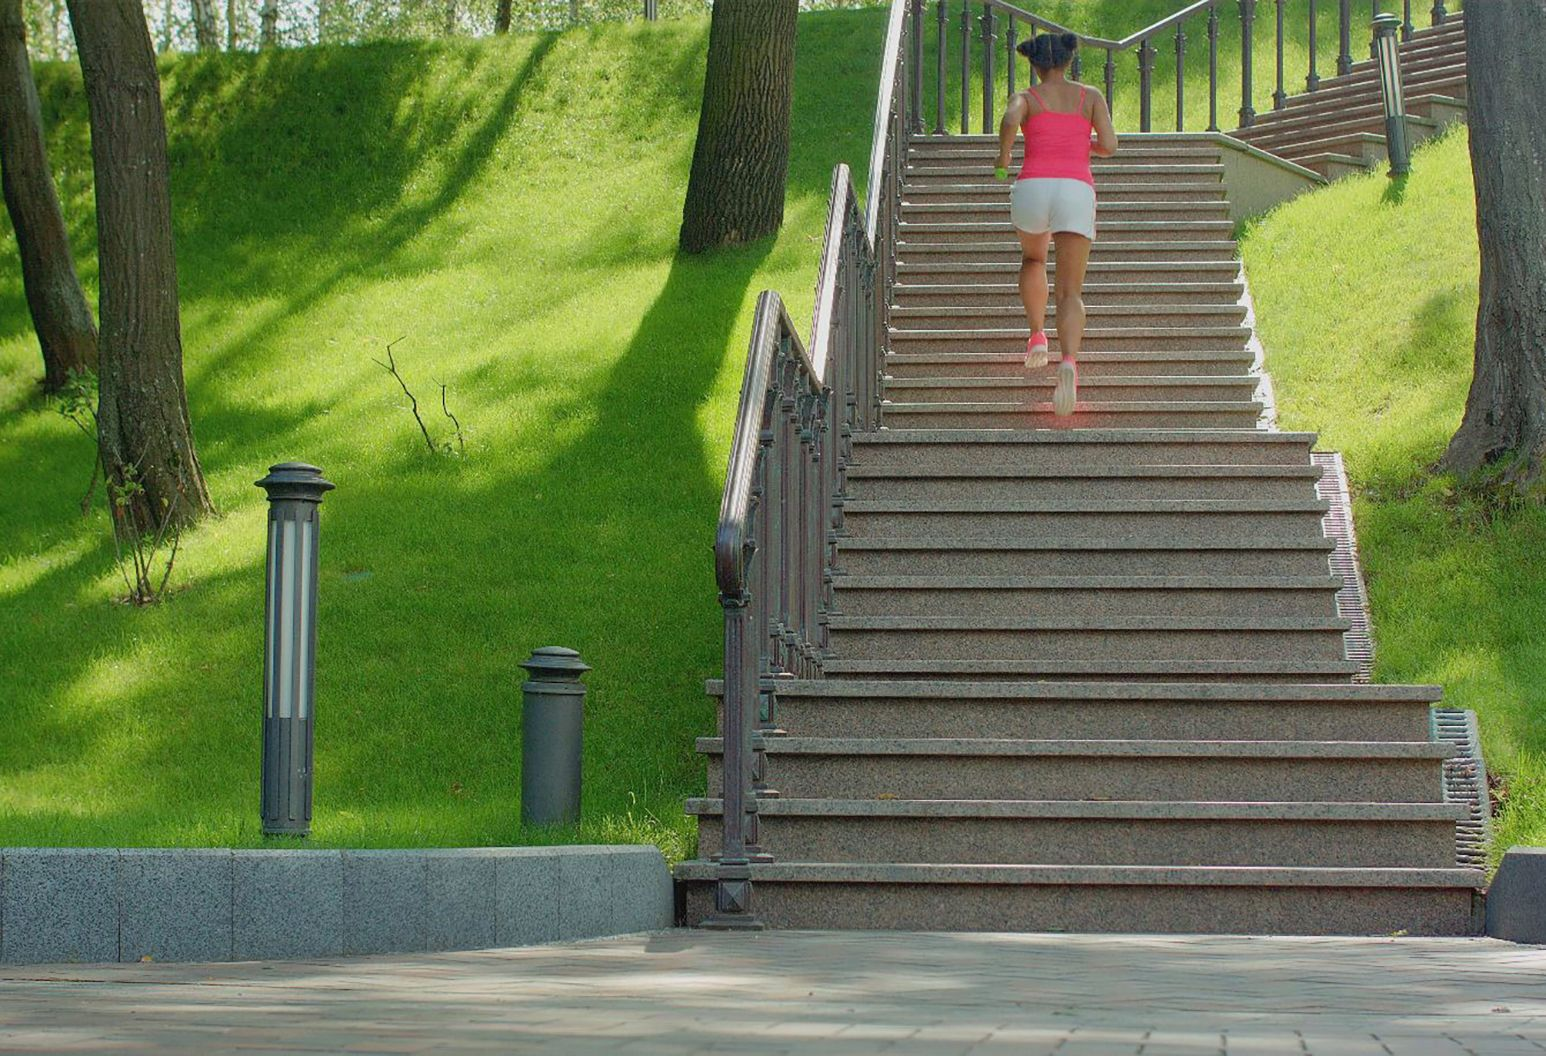 Woman jogging up steps